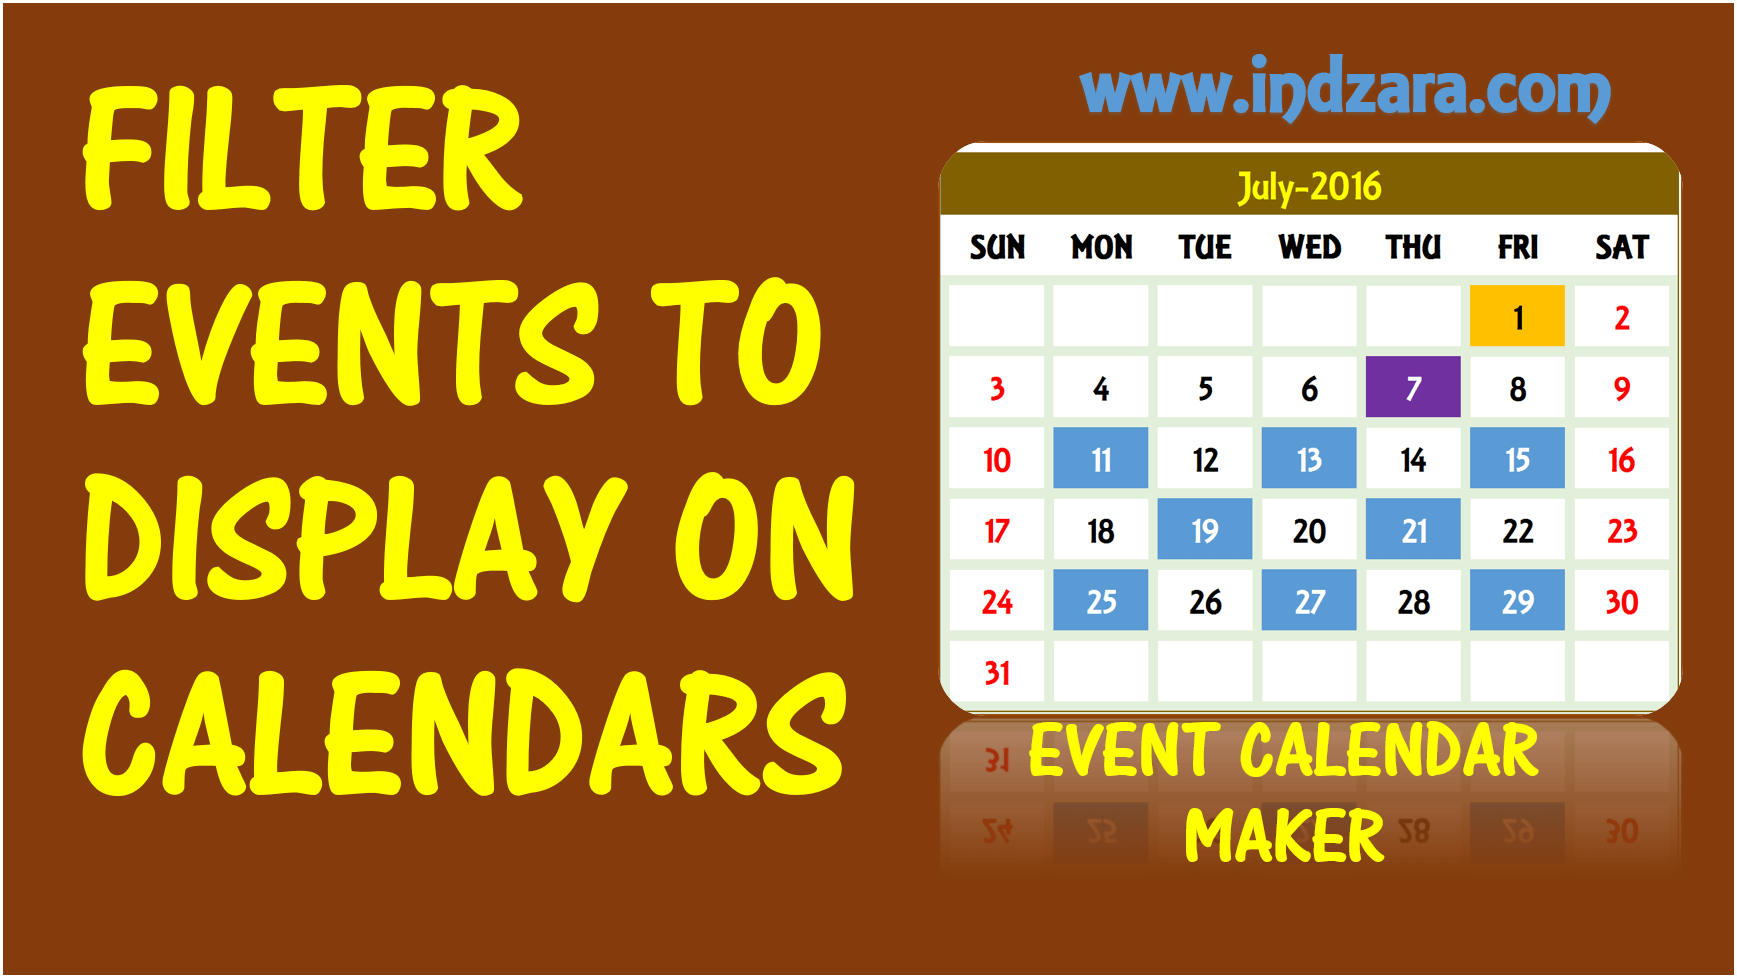 How To Filter Events To Display On Calendars Use A